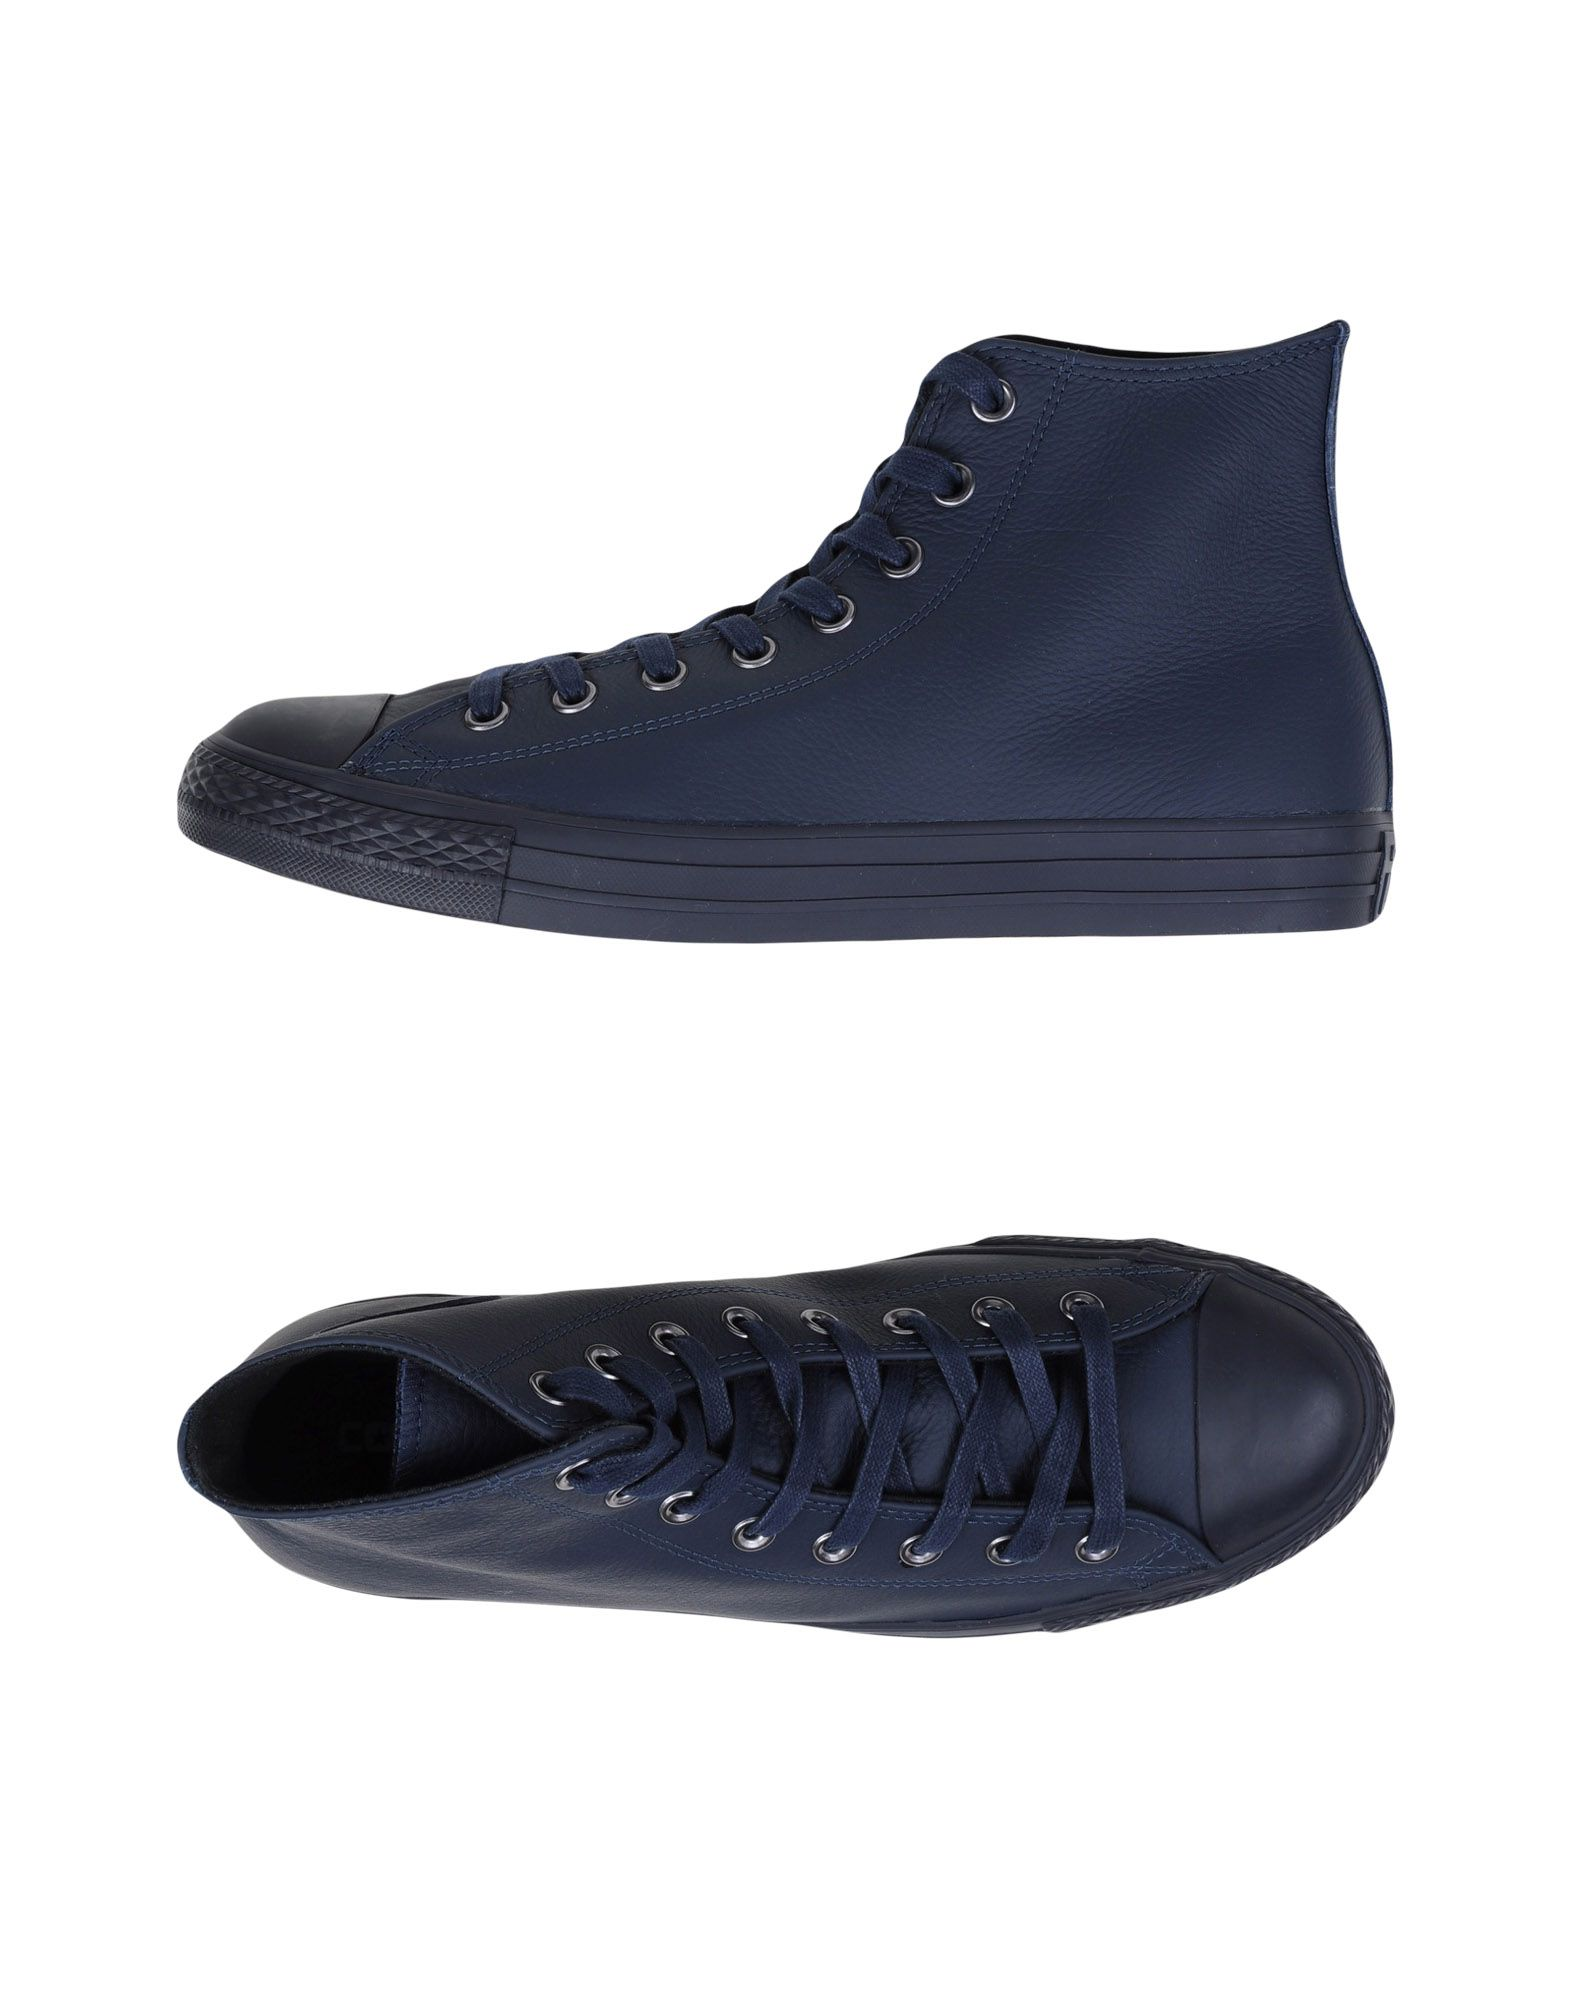 Sneakers Converse All Star All Star Hi Leather - Homme - Sneakers Converse All Star sur